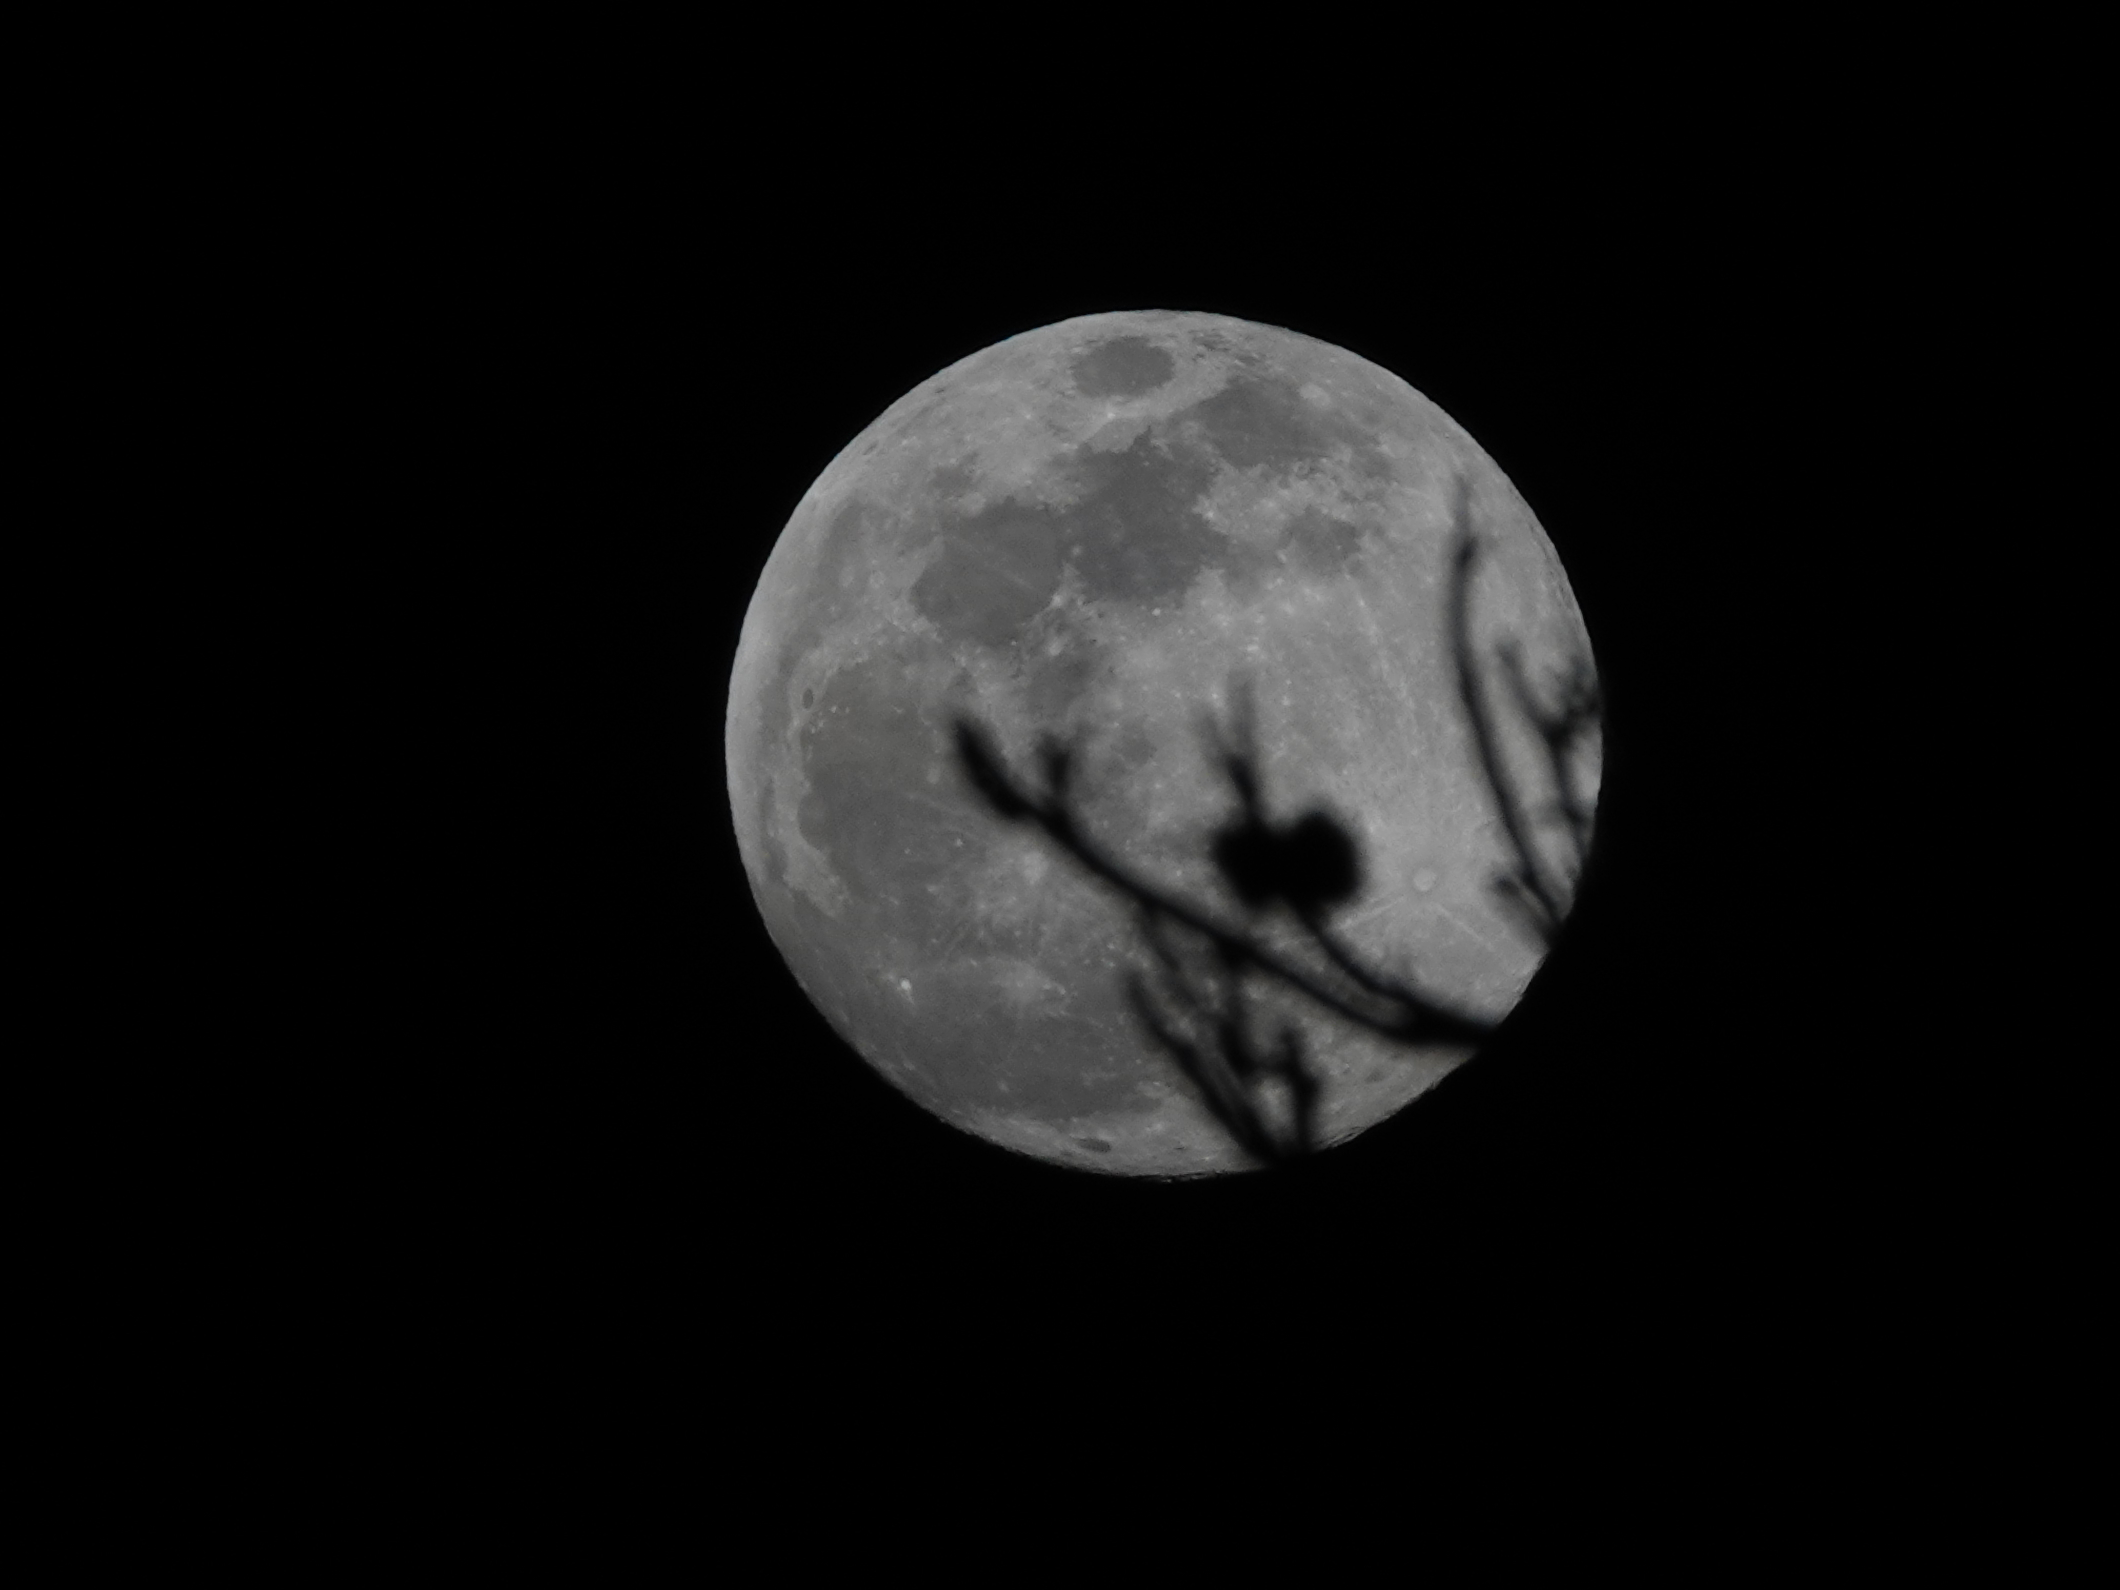 Monday's supermoon rises behind tree branches in Camarillo around 6:30 p.m.